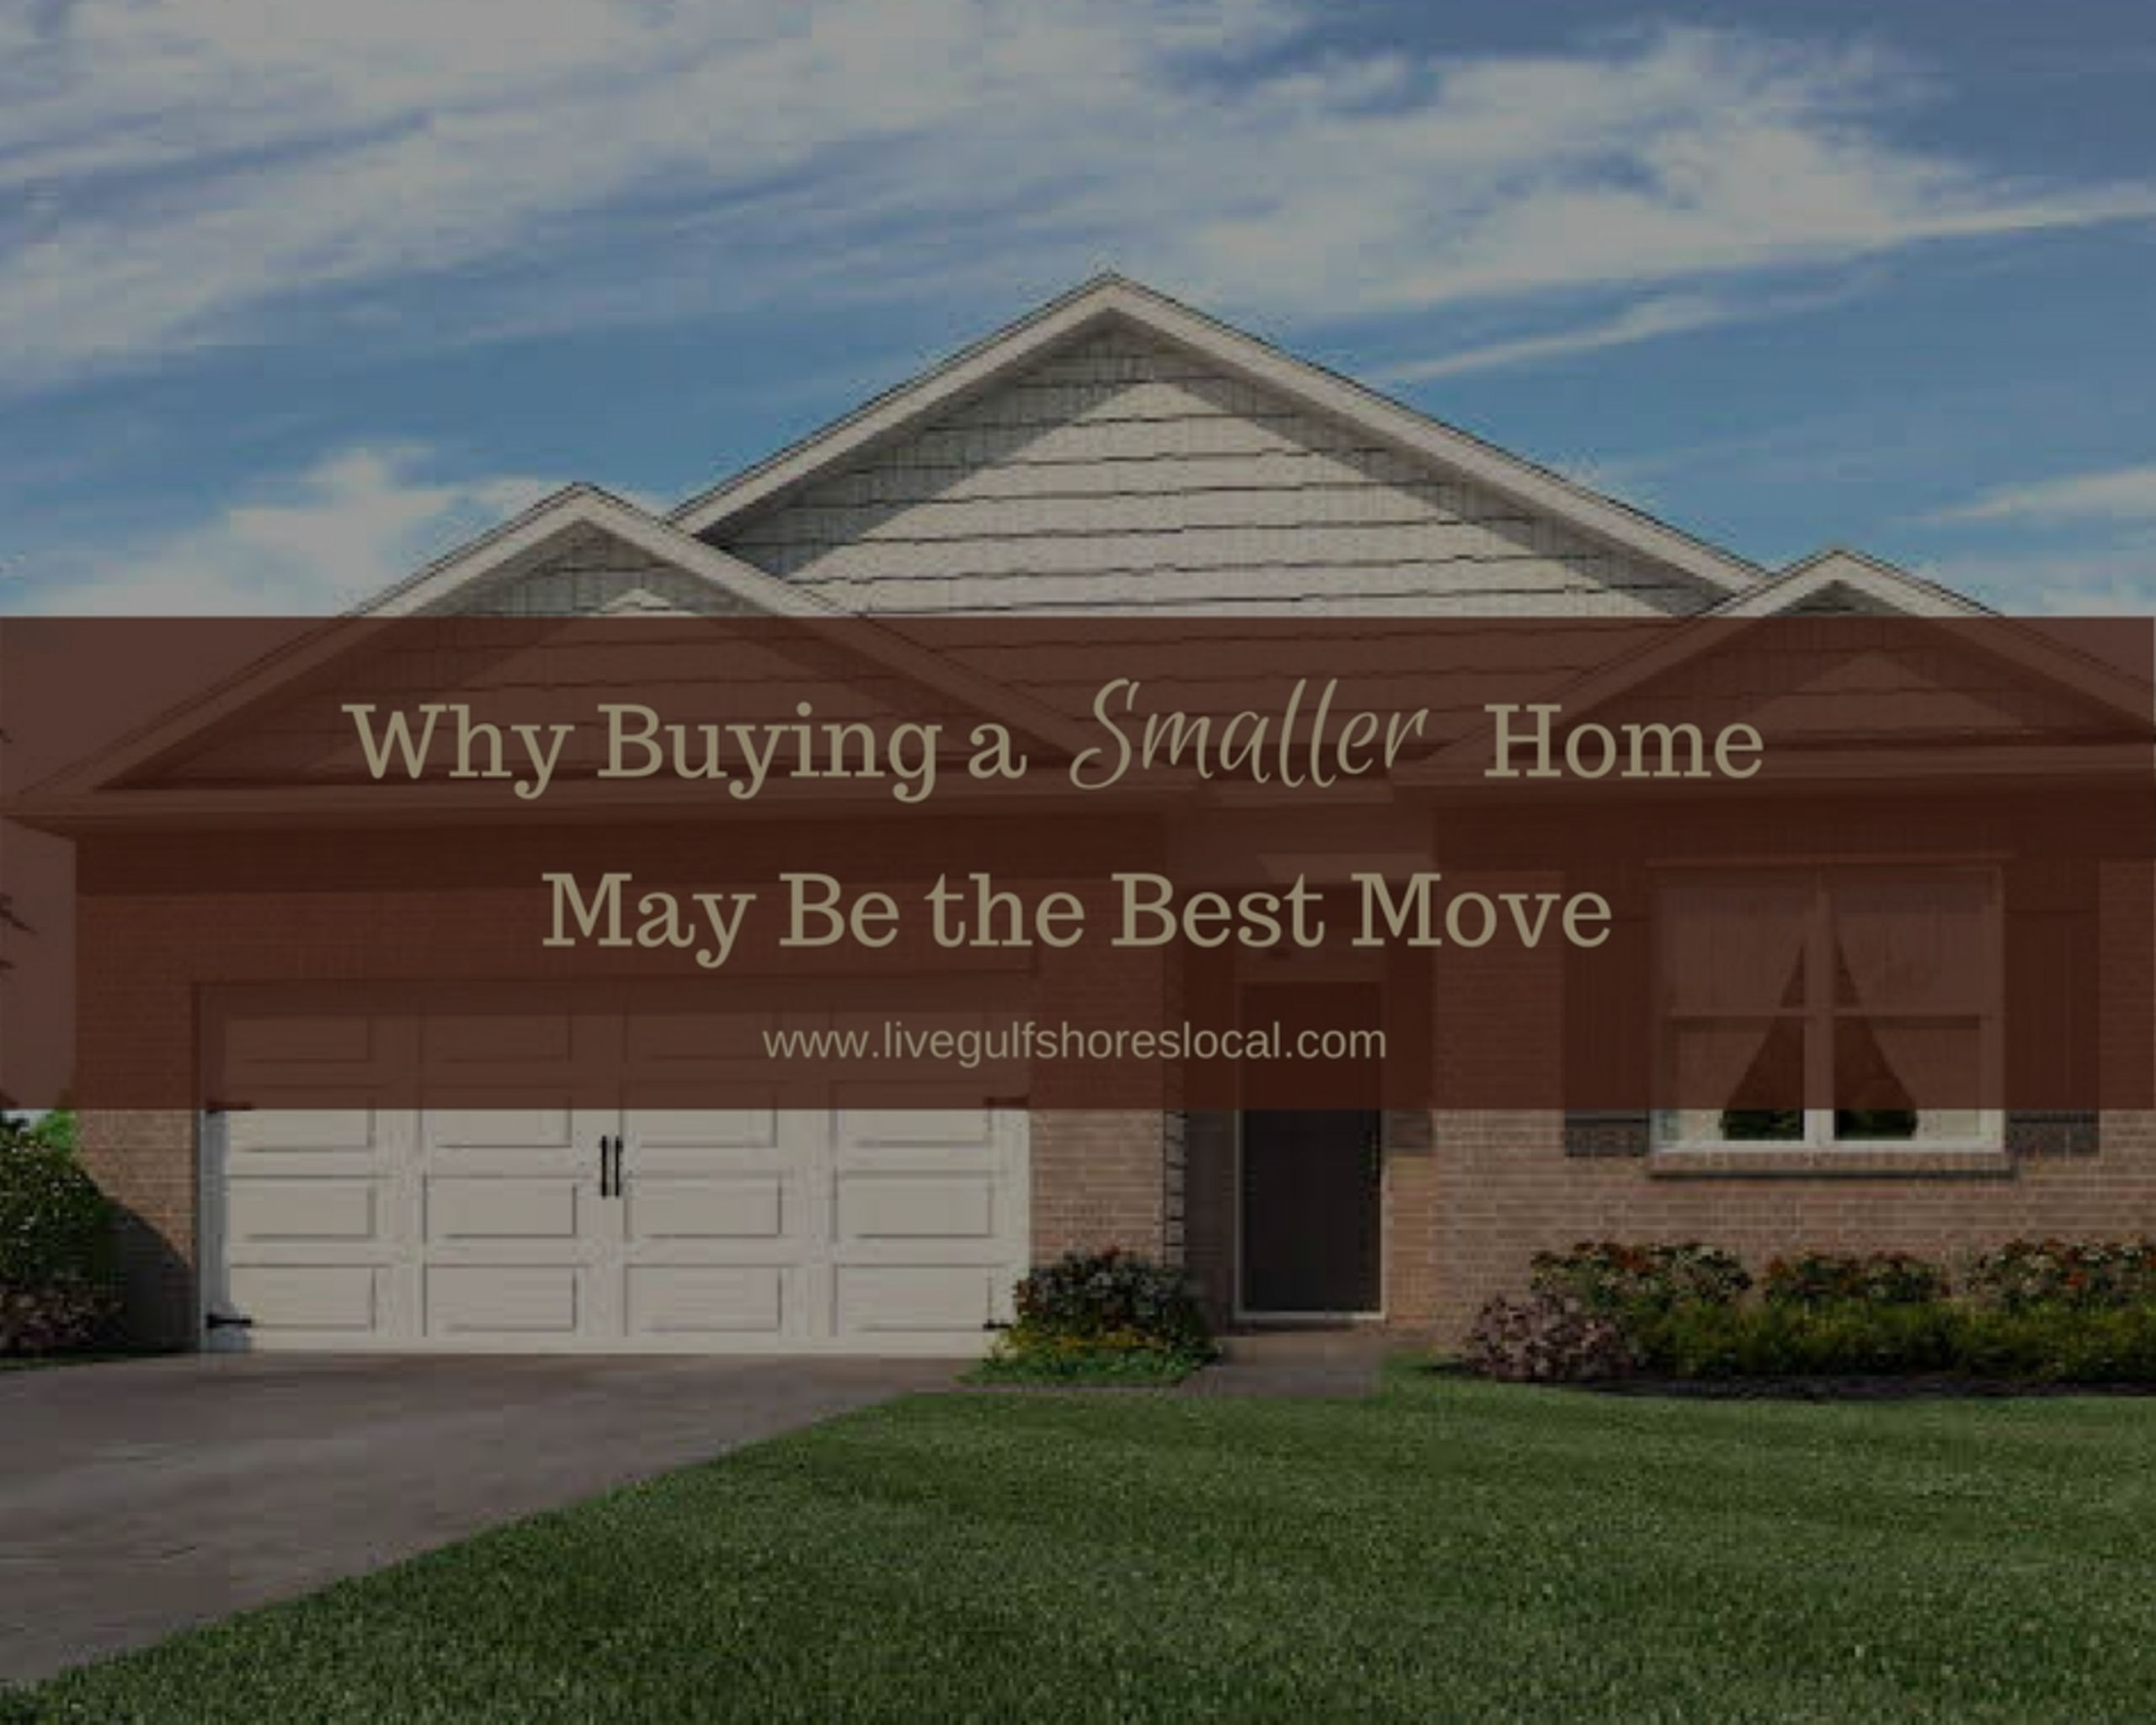 Why Buying a Smaller Home May Be the Best Move